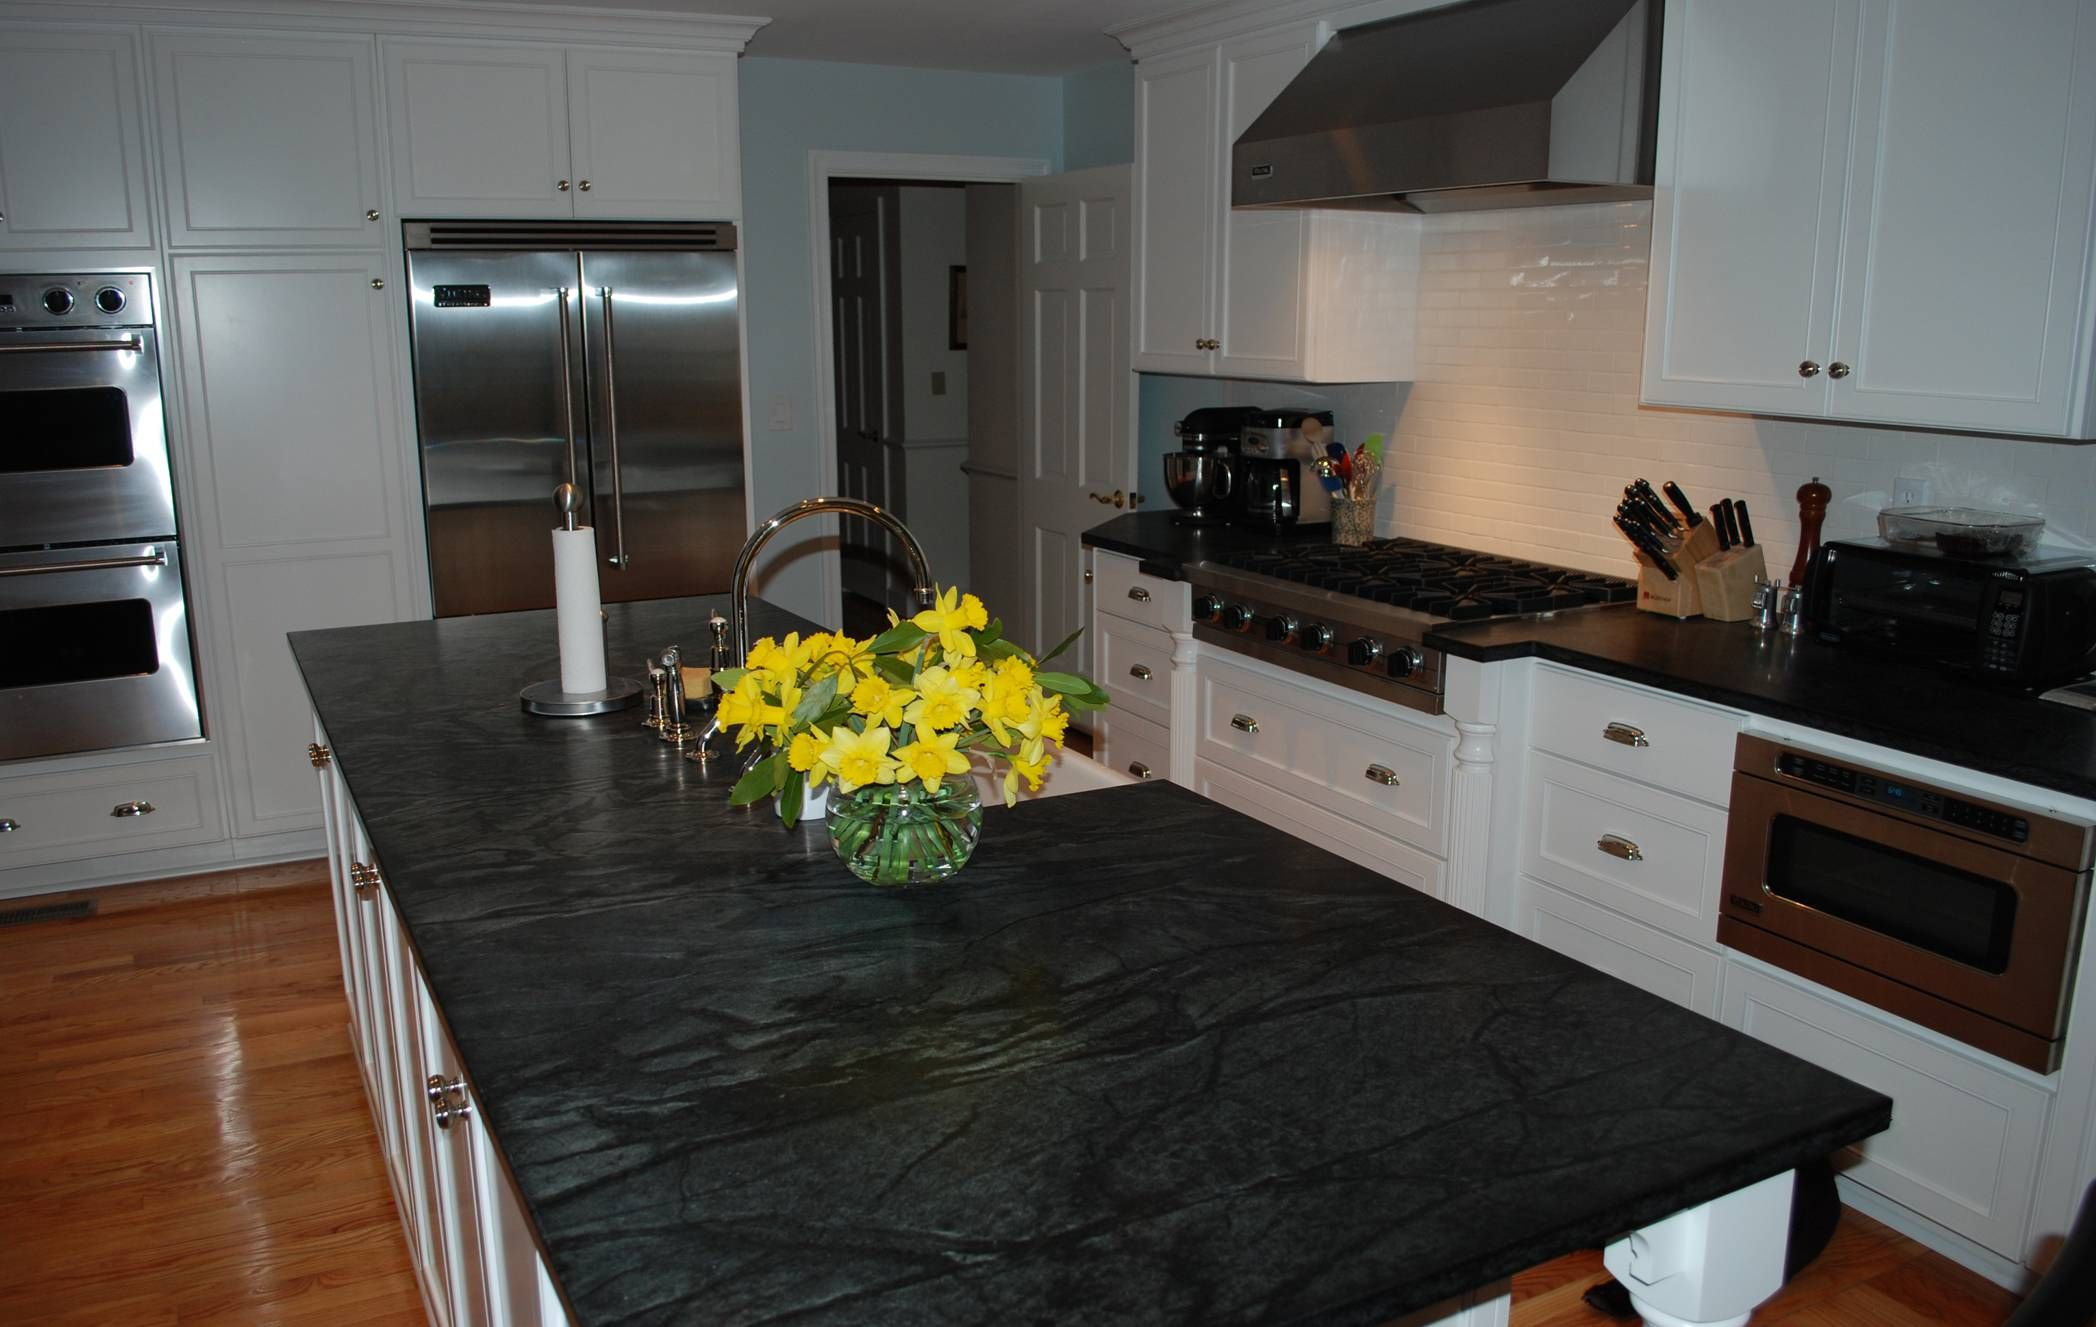 granite countertops photos gallery | 15 16 17 | Decorating ideas ...